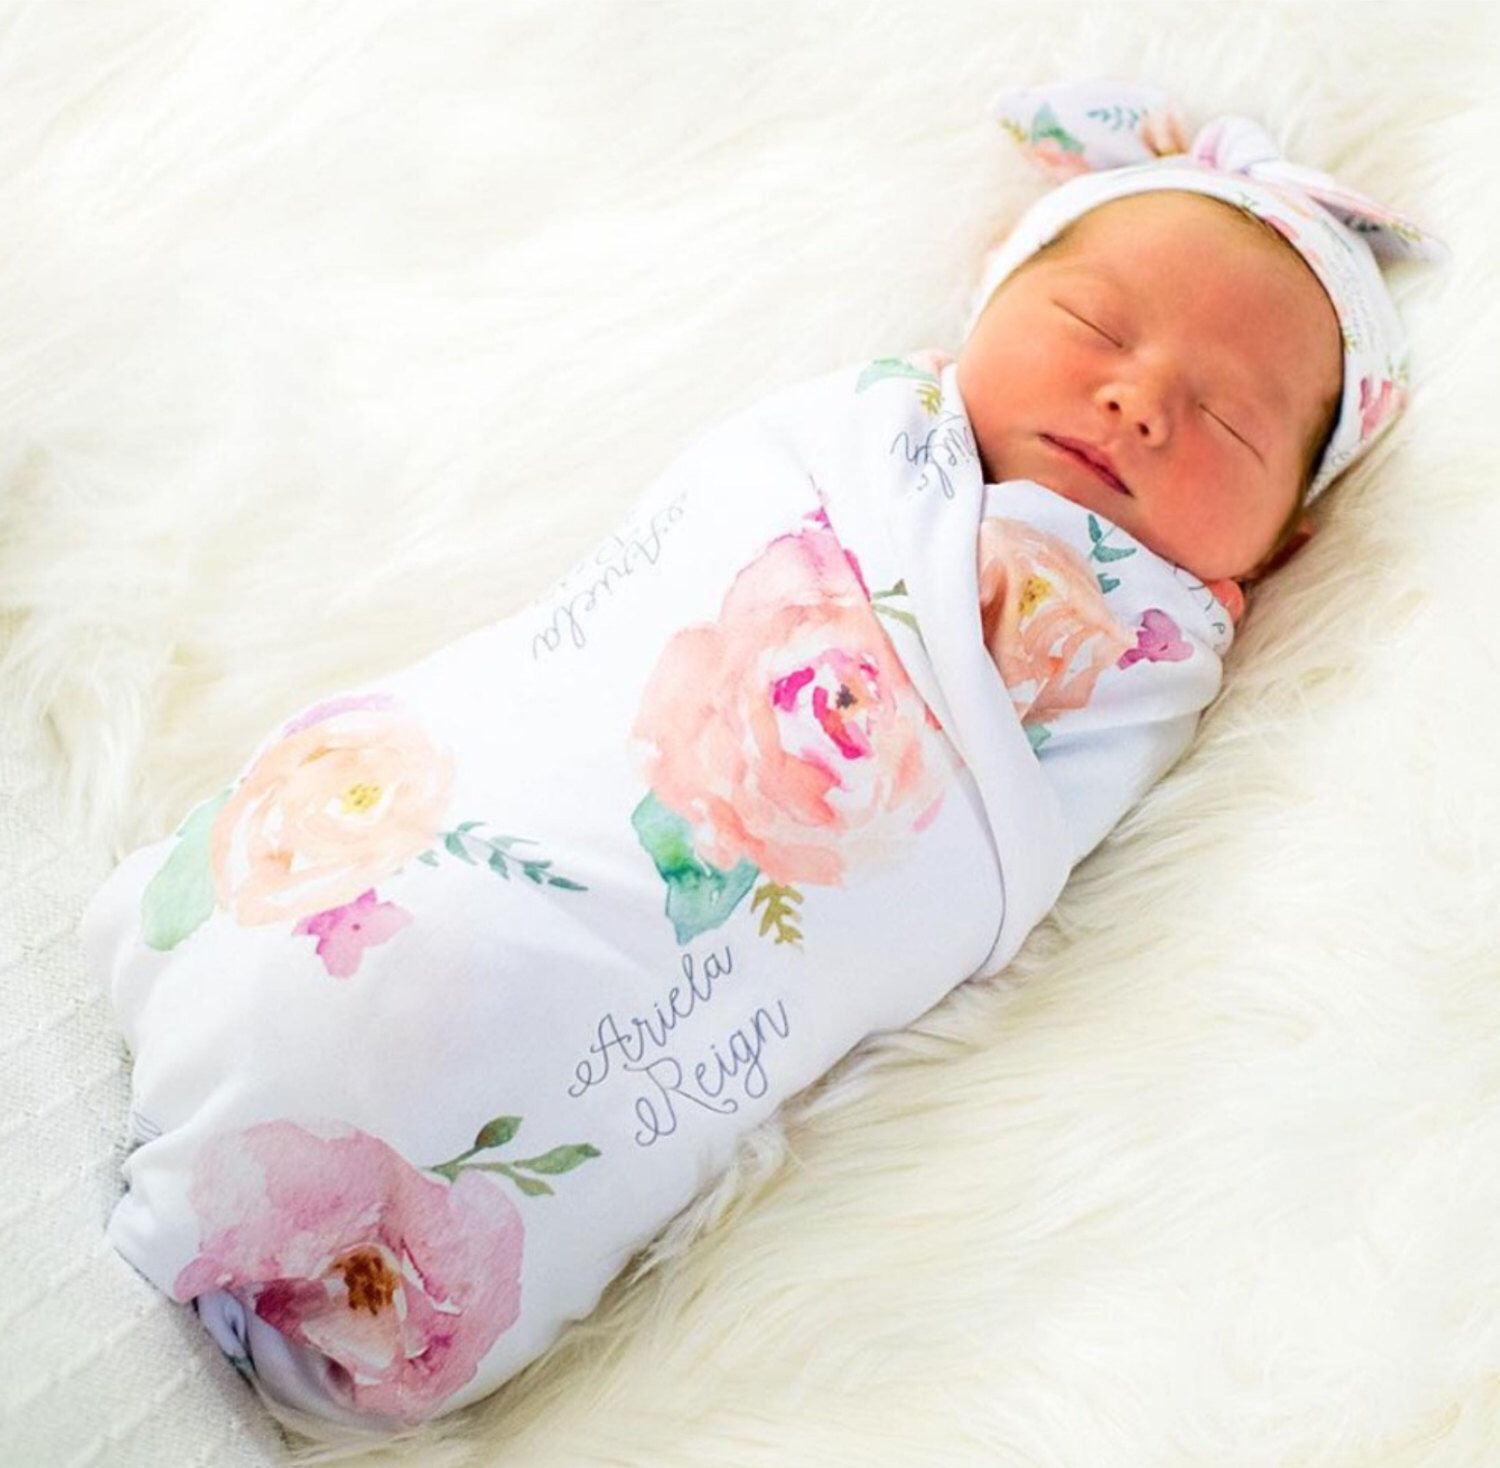 Floral baby blanket personalized swaddle pink peonies photo prop pretty peony personalized floral baby swaddle floral baby blanket floral receiving blanket floral baby name blanket baby shower gift by agreatbaby on negle Images